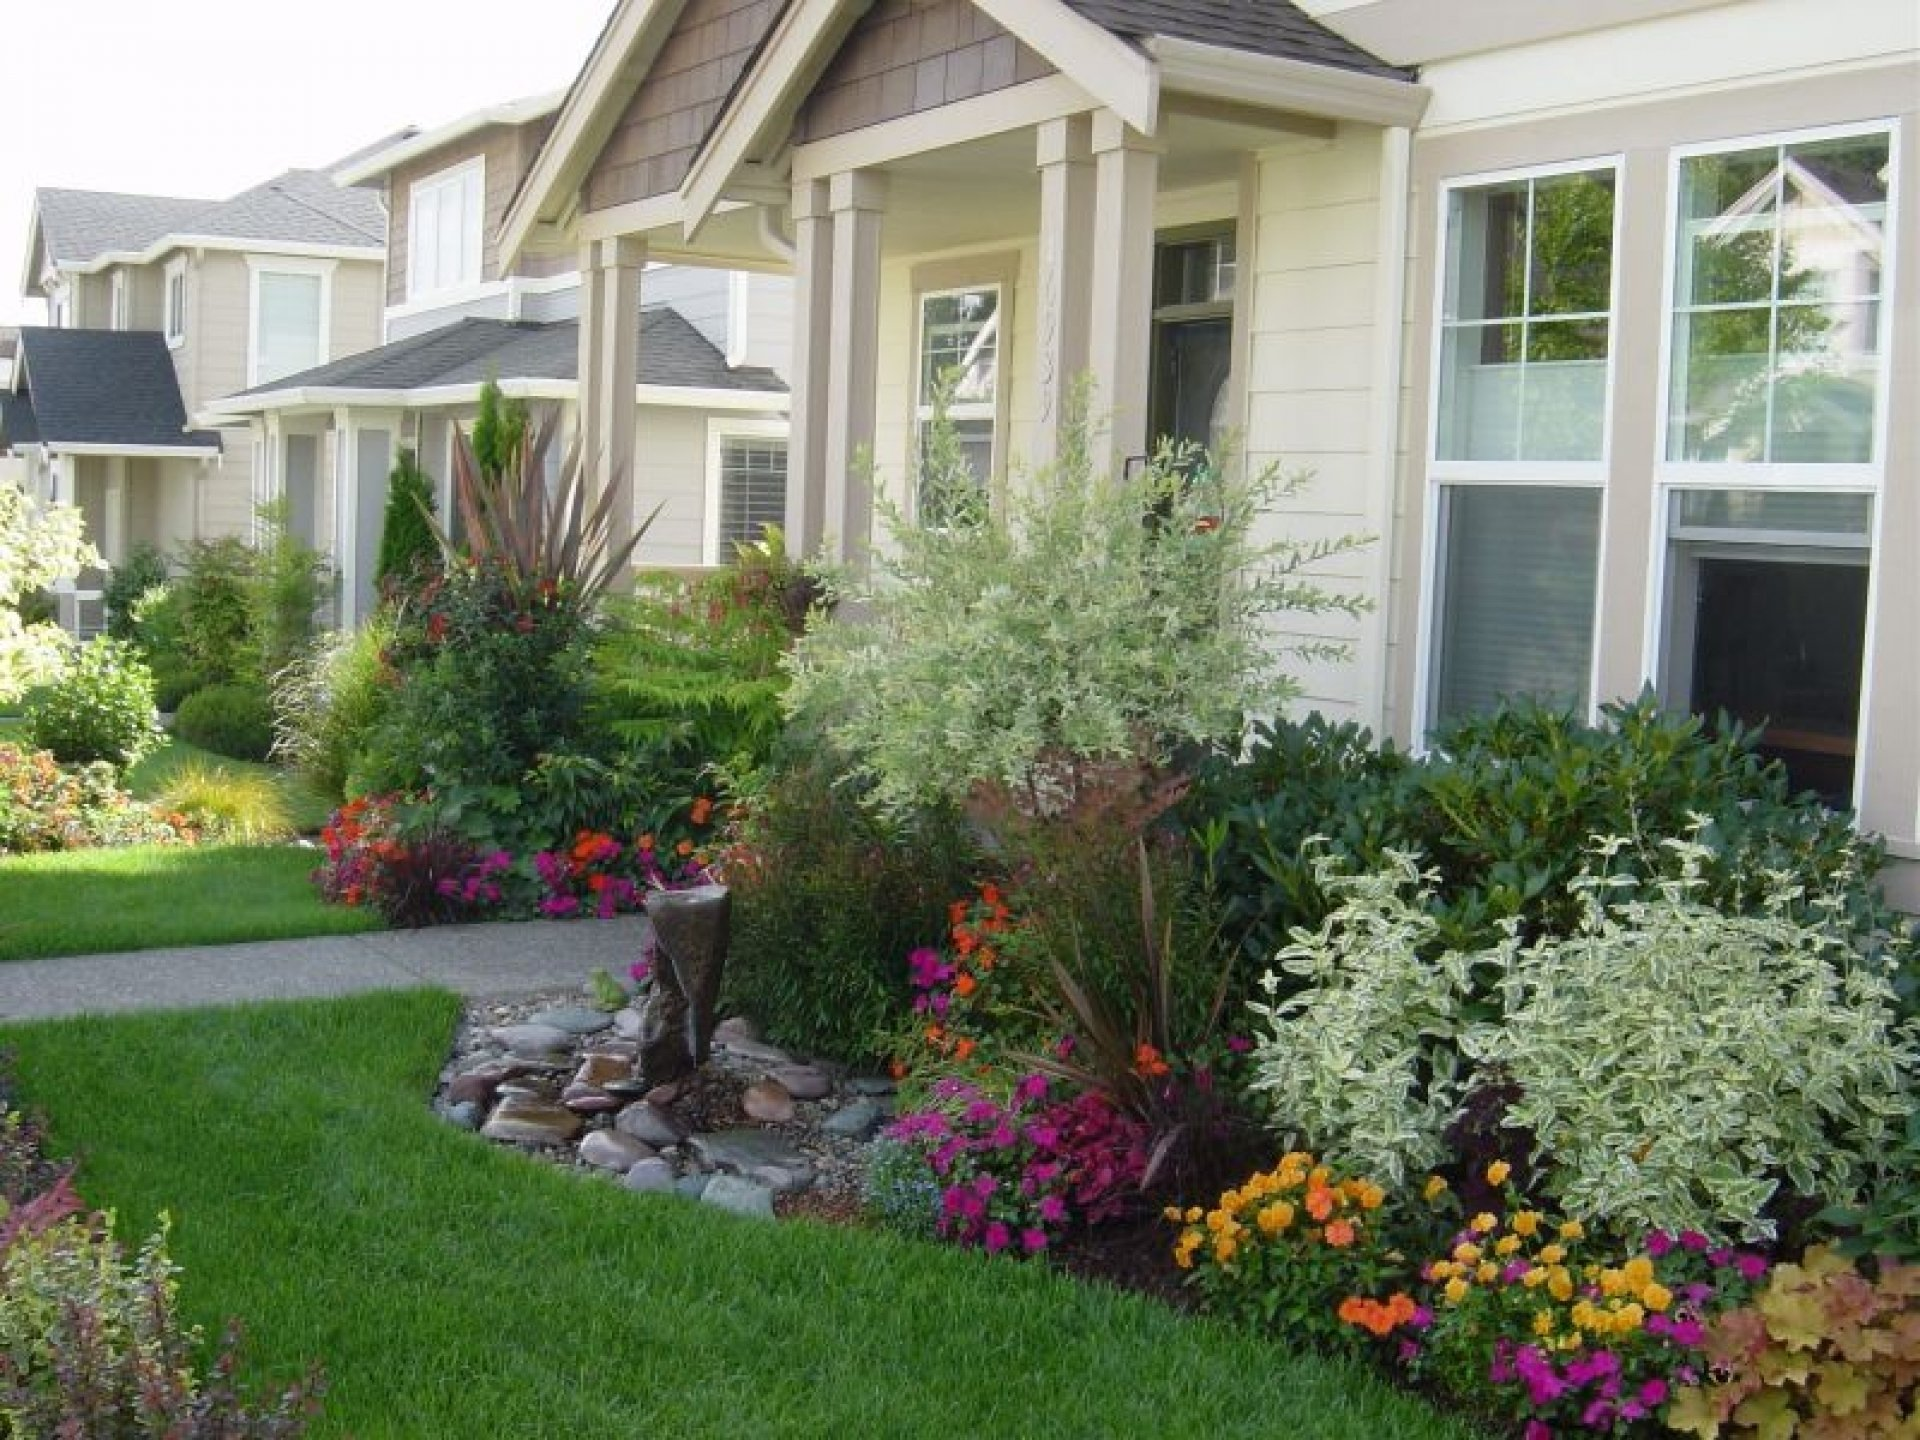 10 Great Landscaping Ideas For Front Of House best landscaping ideas for front house design ideas and decor